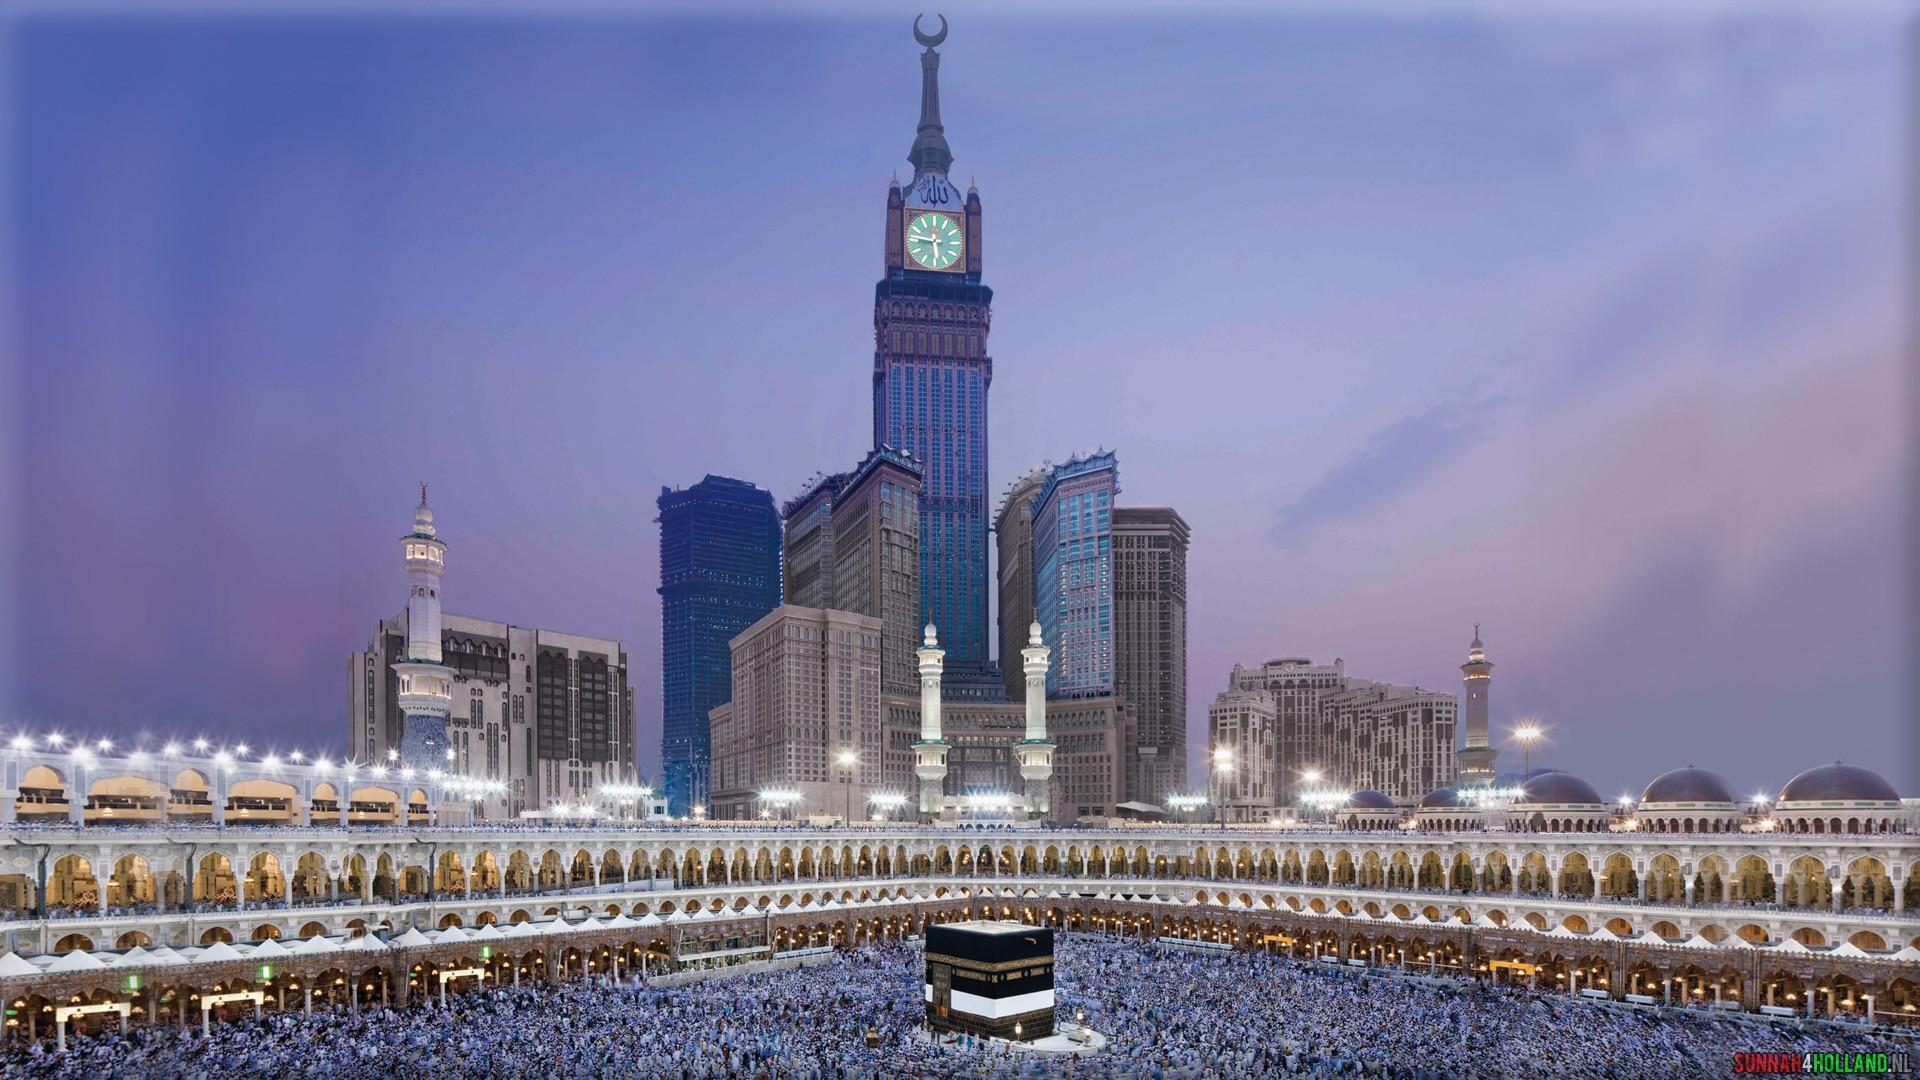 Kaaba Mecca Live Wallpaper islamic background for Android 1920x1080